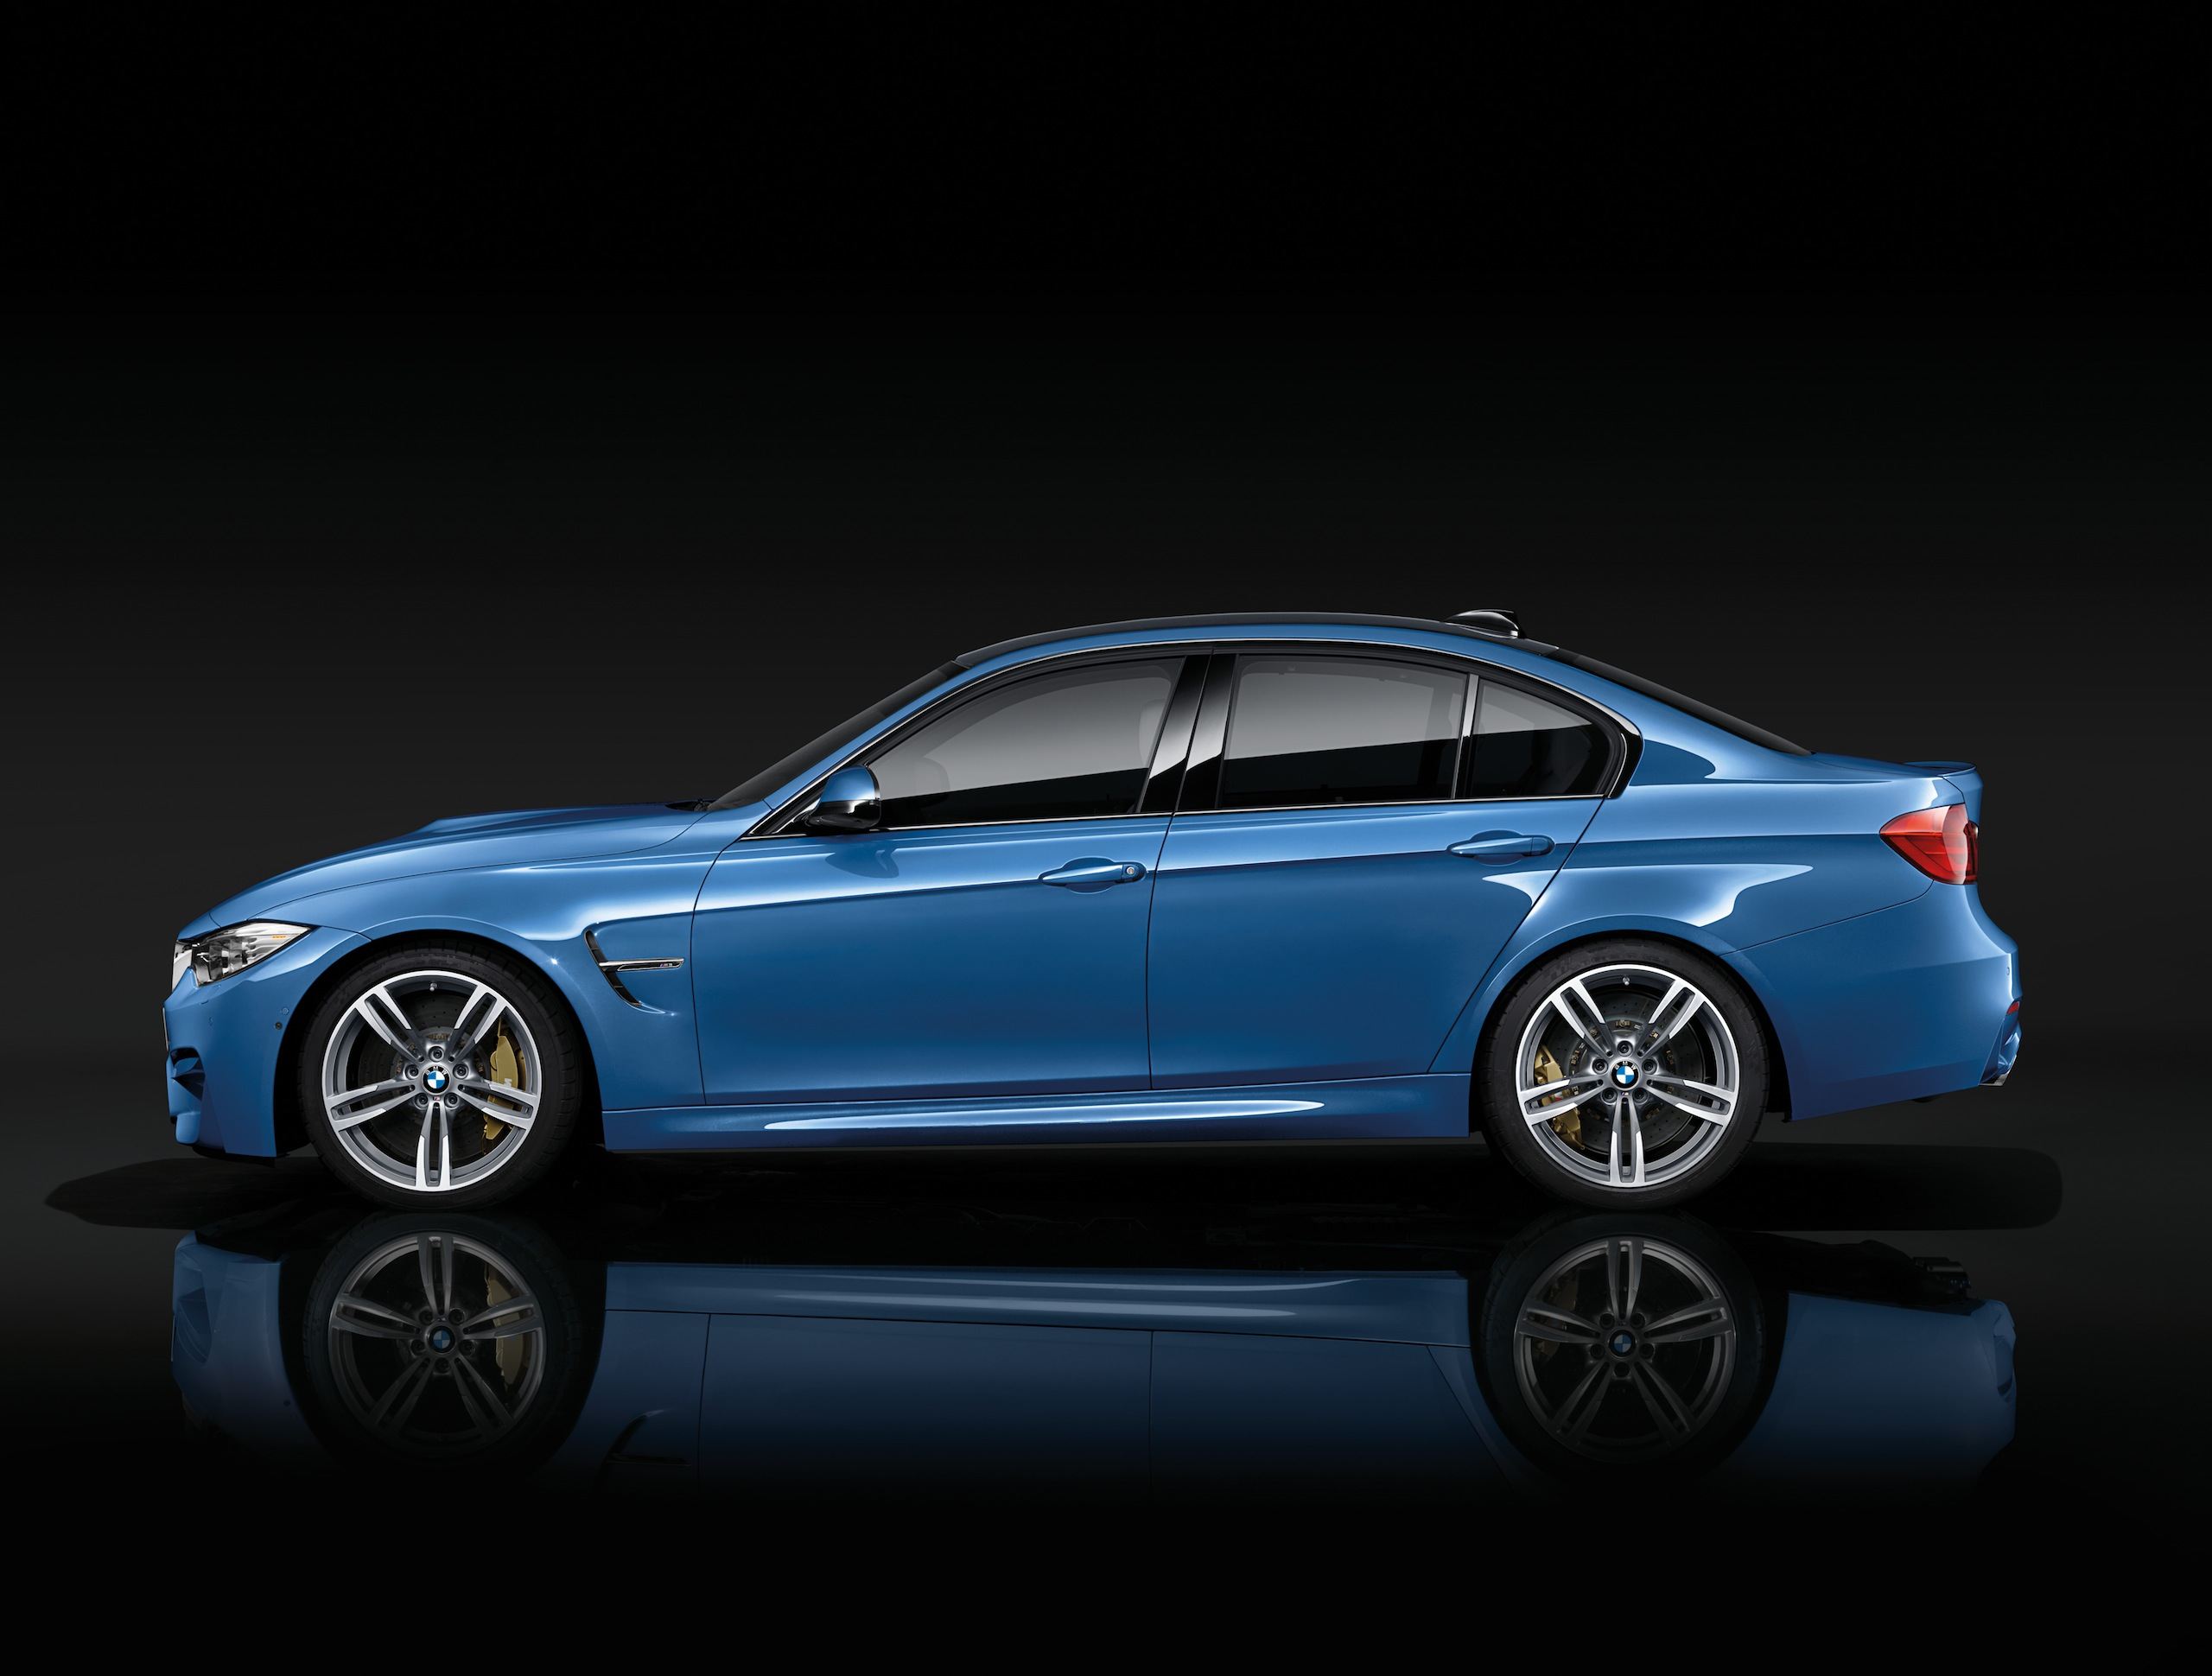 F80 M3 Side Skirts On F30